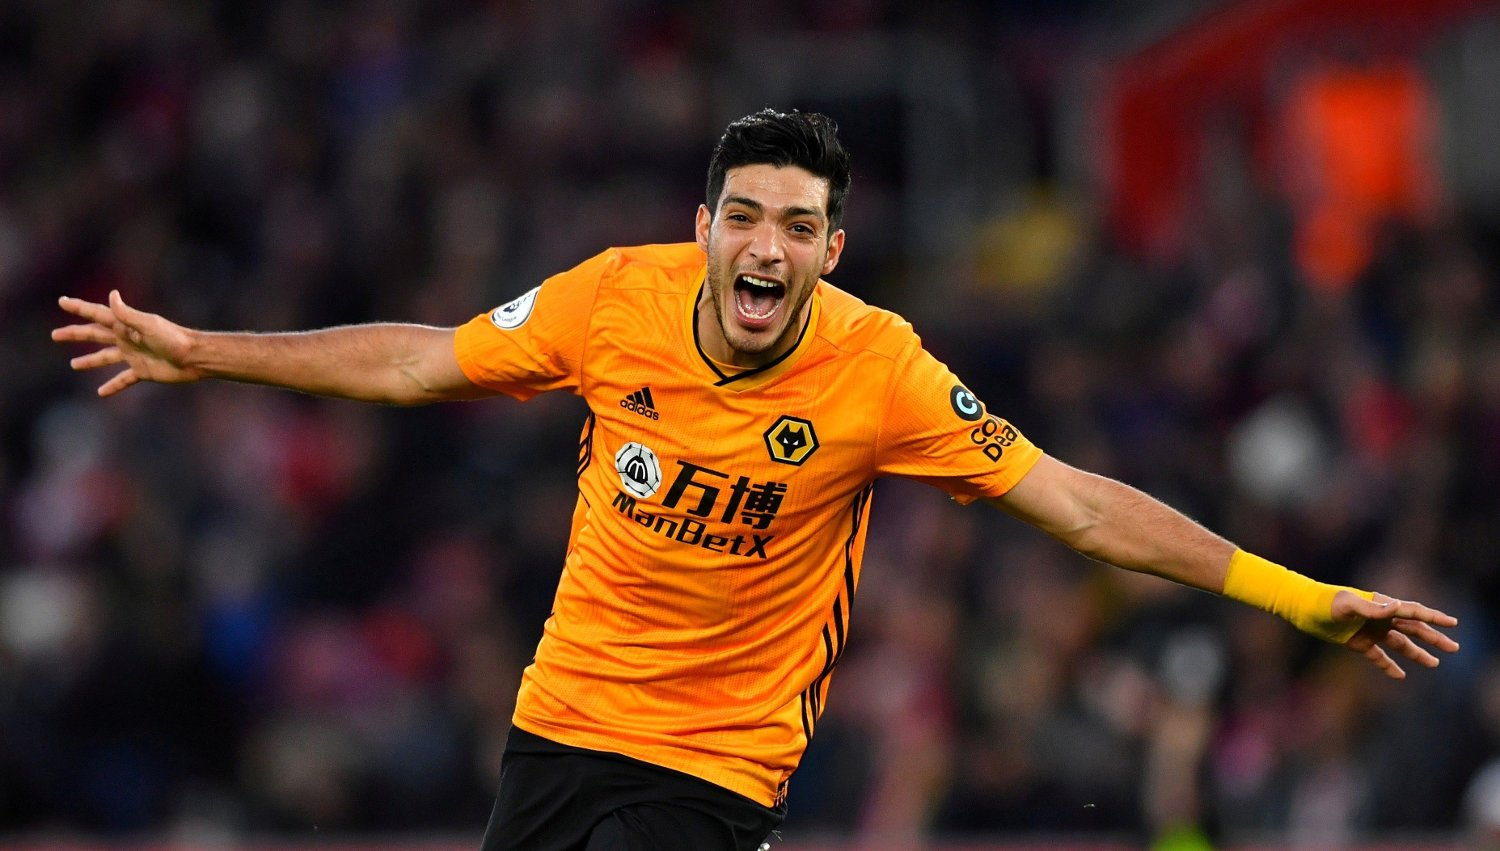 Soccer Football - Premier League - Southampton v Wolverhampton Wanderers - St Mary's Stadium, Southampton, Britain - January 18, 2020 Wolverhampton Wanderers' Raul Jimenez celebrates scoring their third goal REUTERS/Dylan Martinez EDITORIAL USE ONLY. No use with unauthorized audio, video, data, fixture lists, club/league logos or